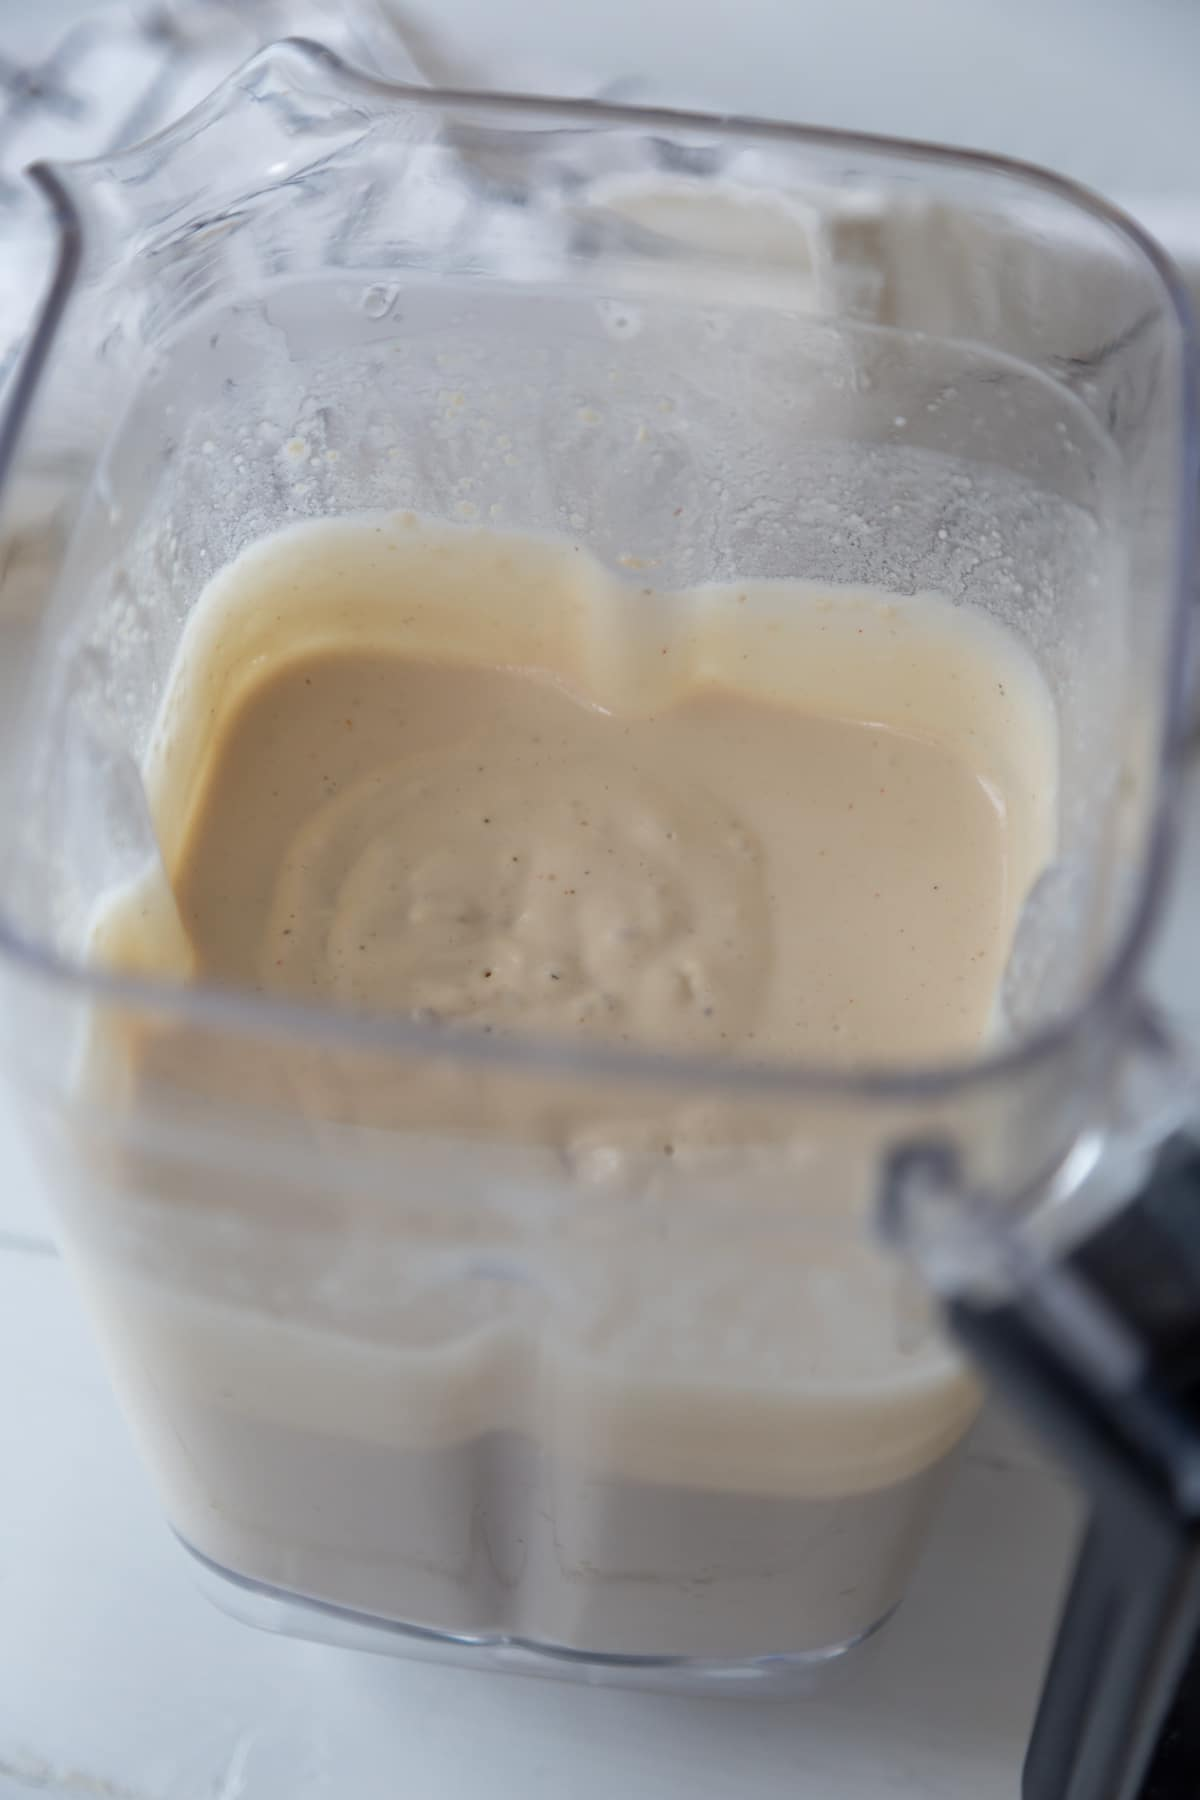 A blender with white cream sauce.